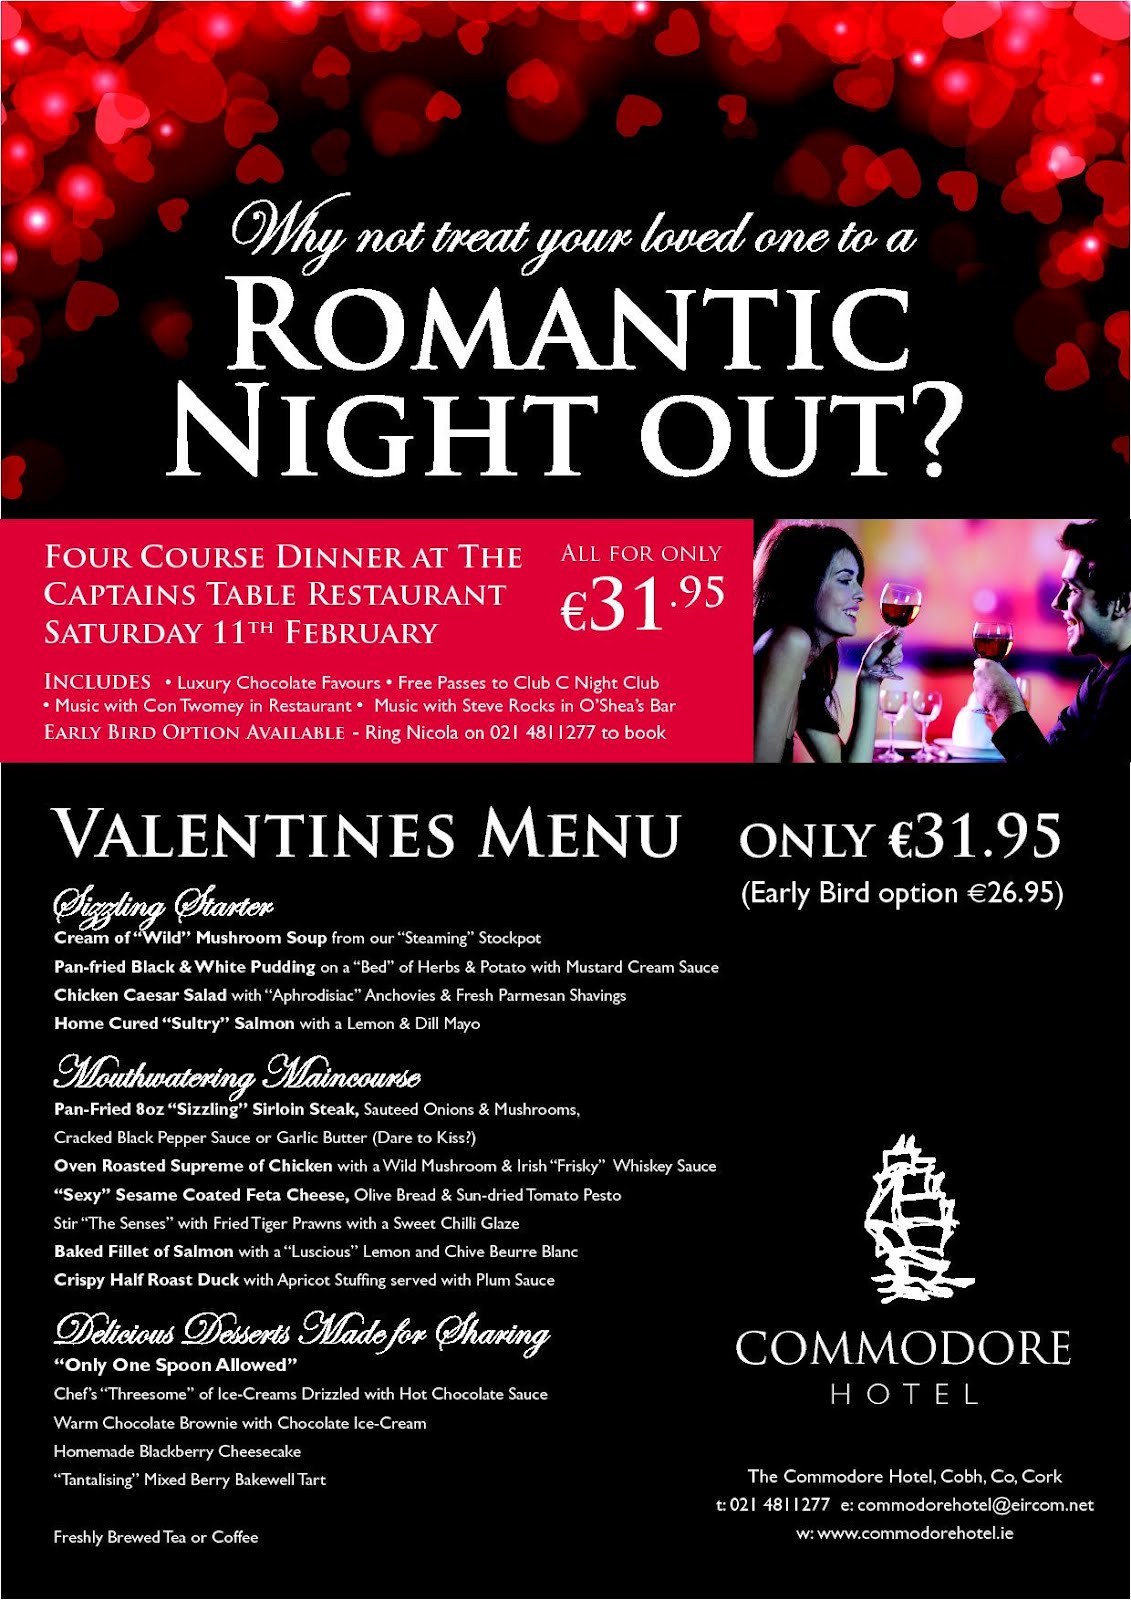 valentines night what have you planned for your better half - Valentine Day Hotel Specials